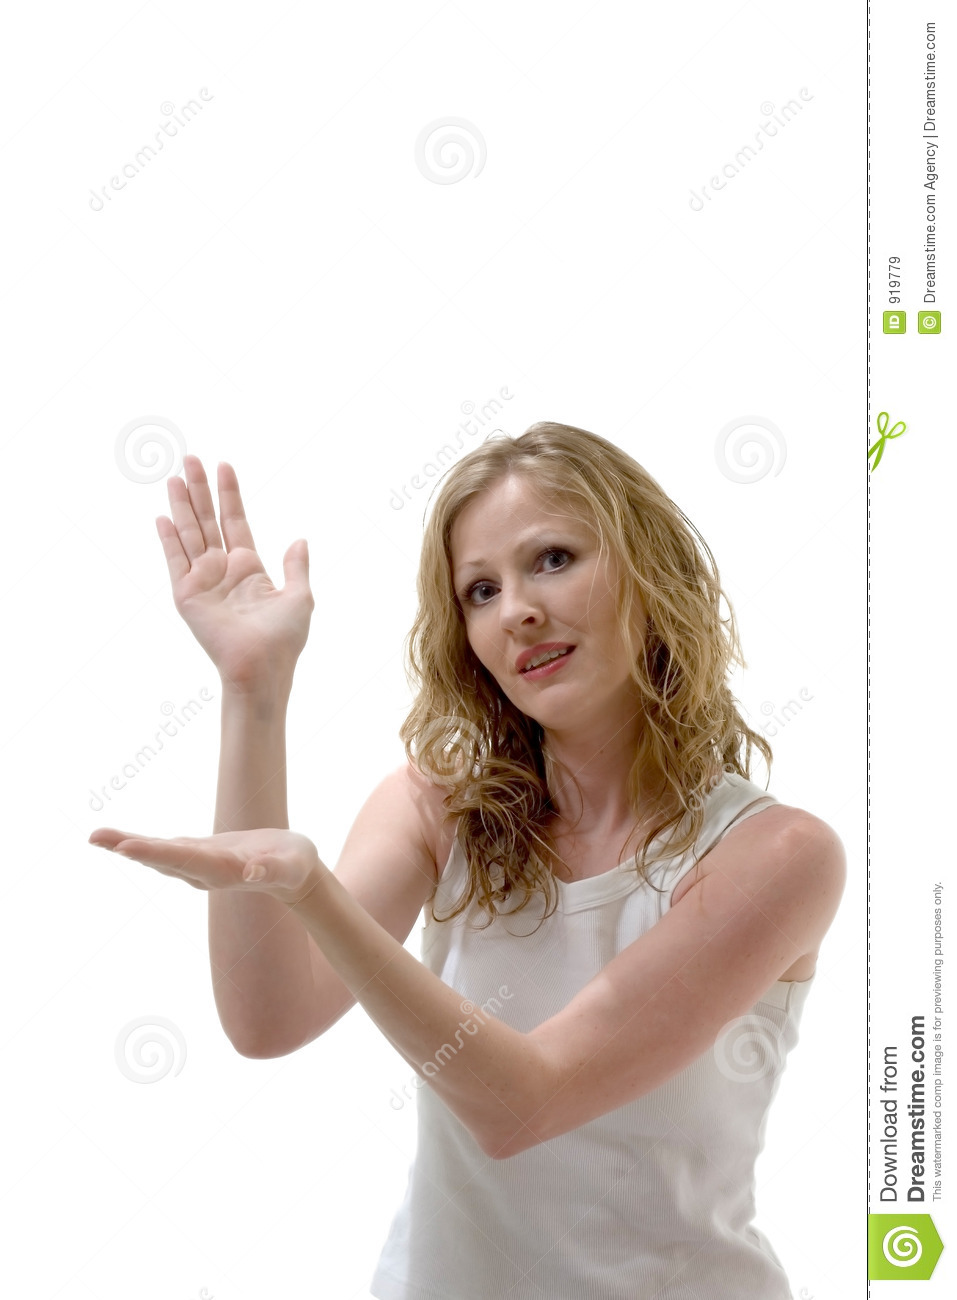 Pretty woman holding imaginary product